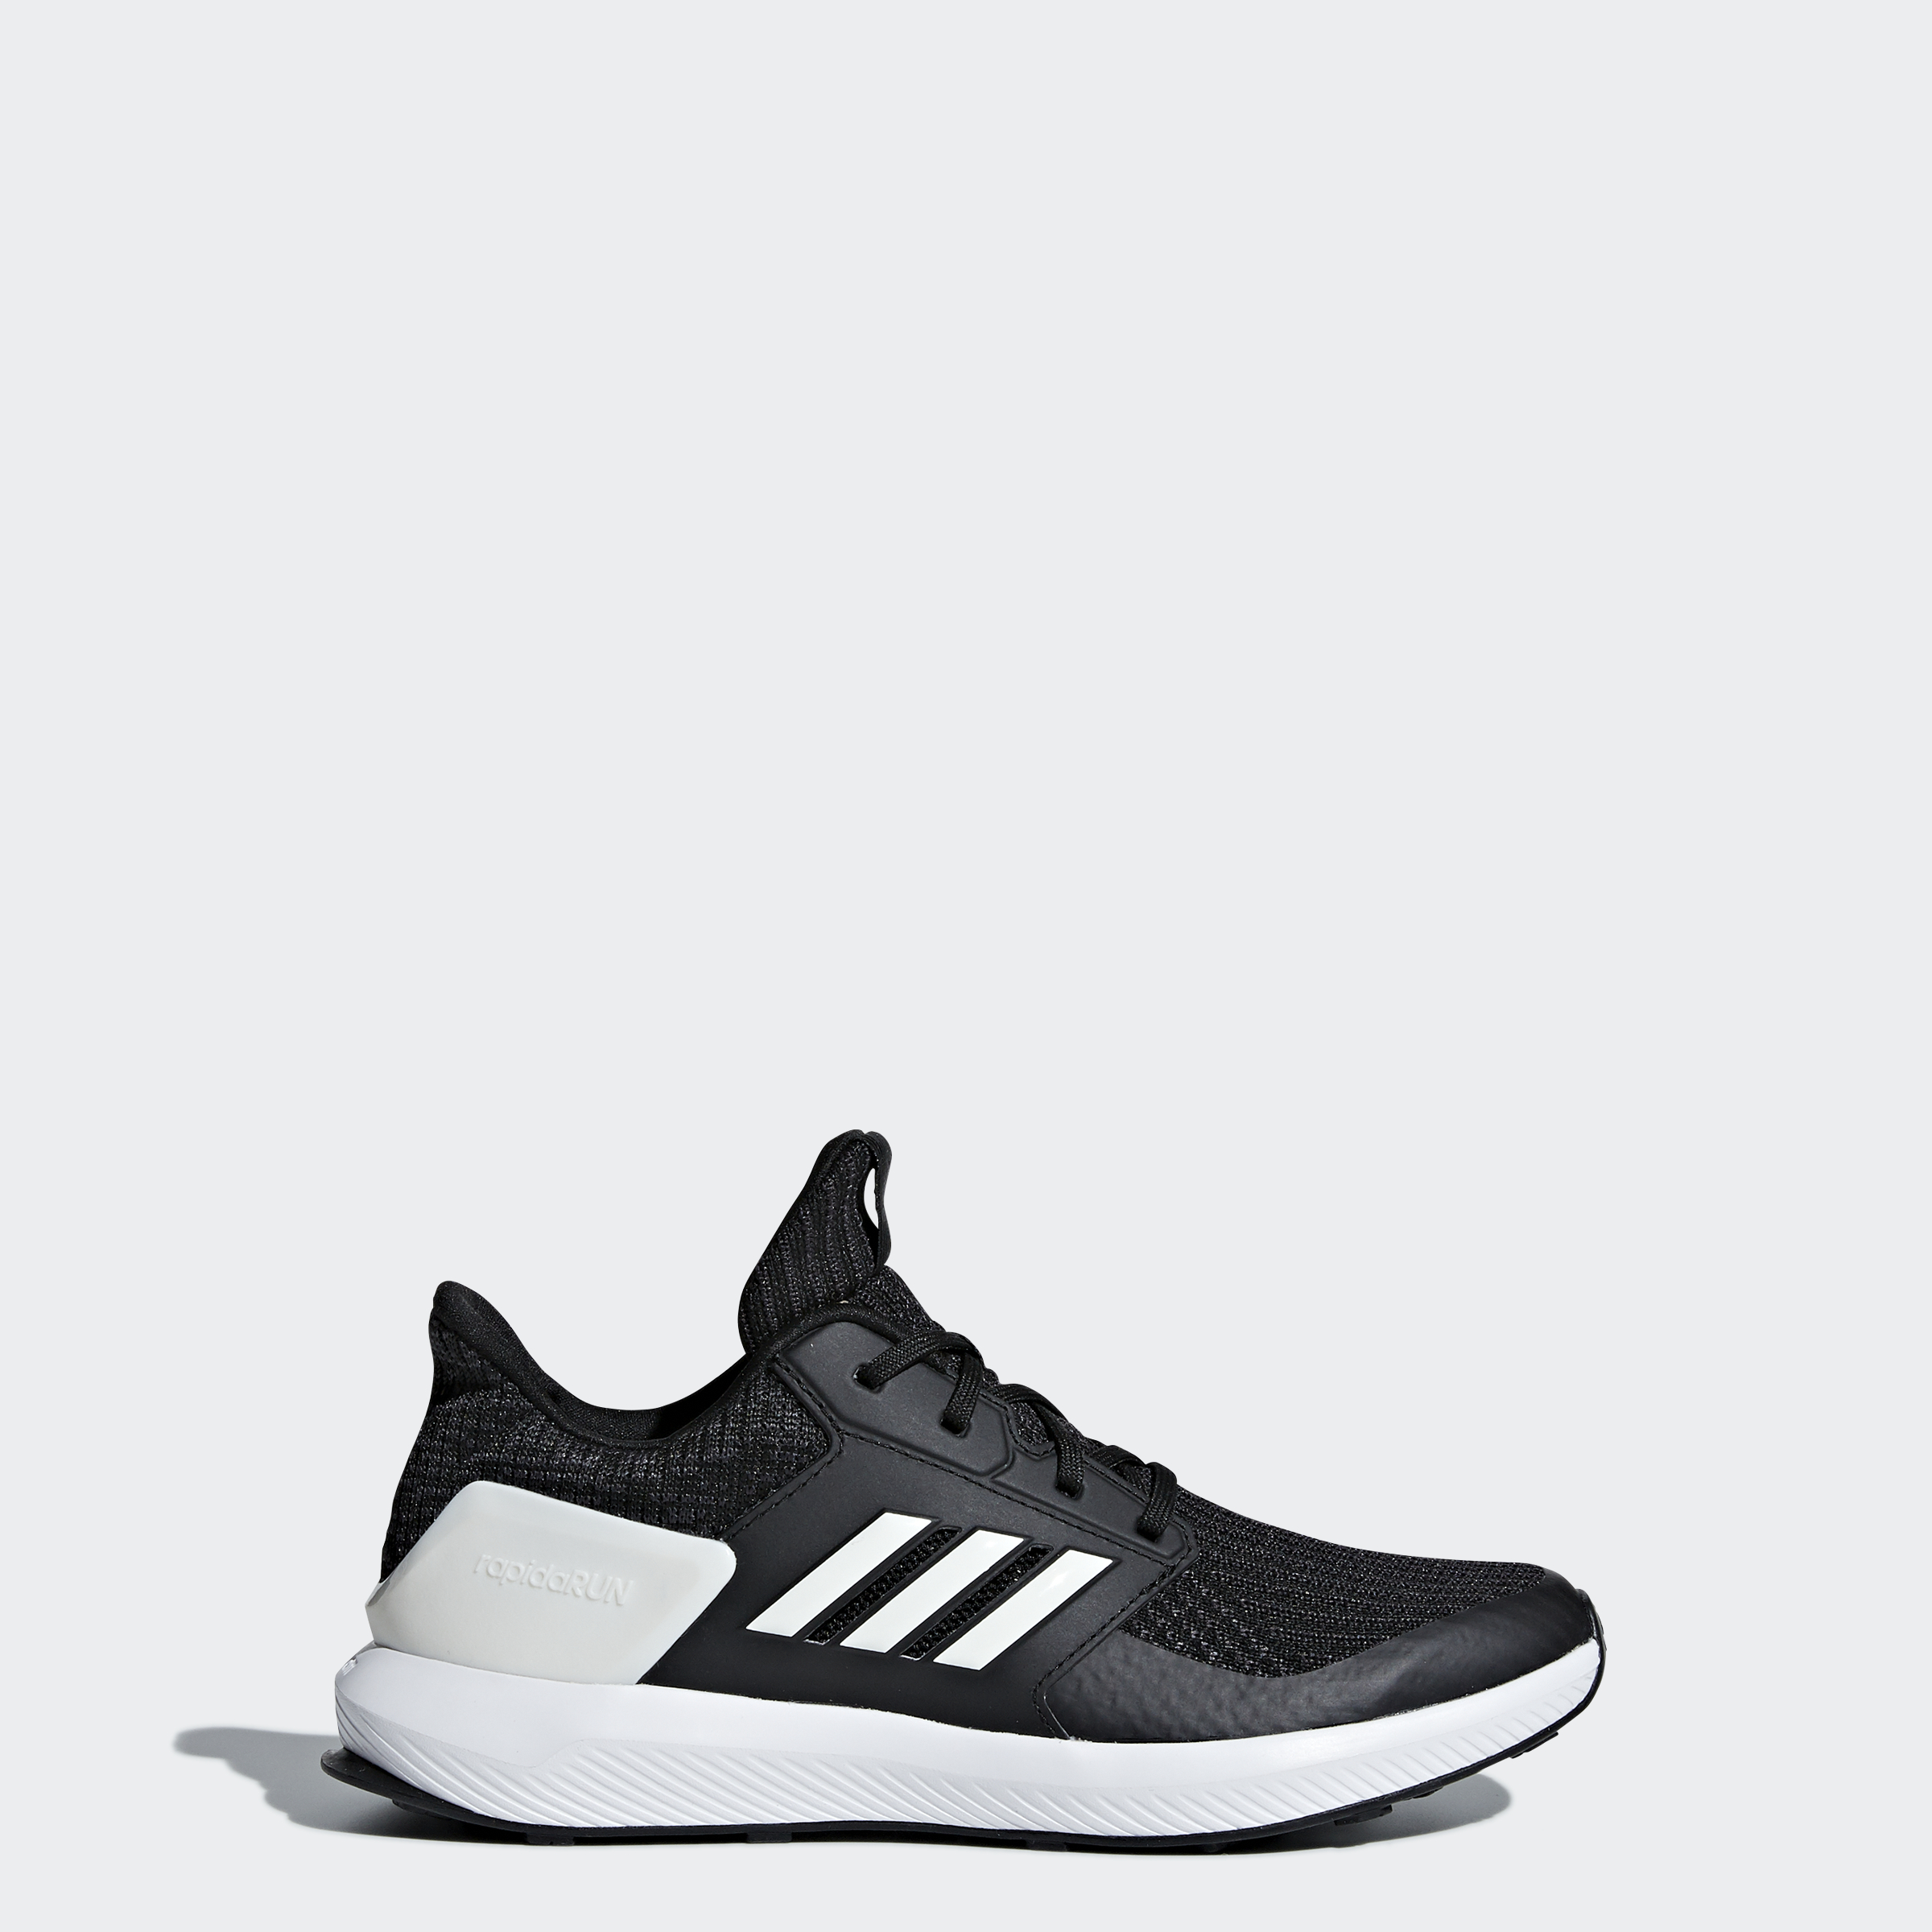 adidas-RapidaRun-Knit-Shoes-Kids-039 thumbnail 10